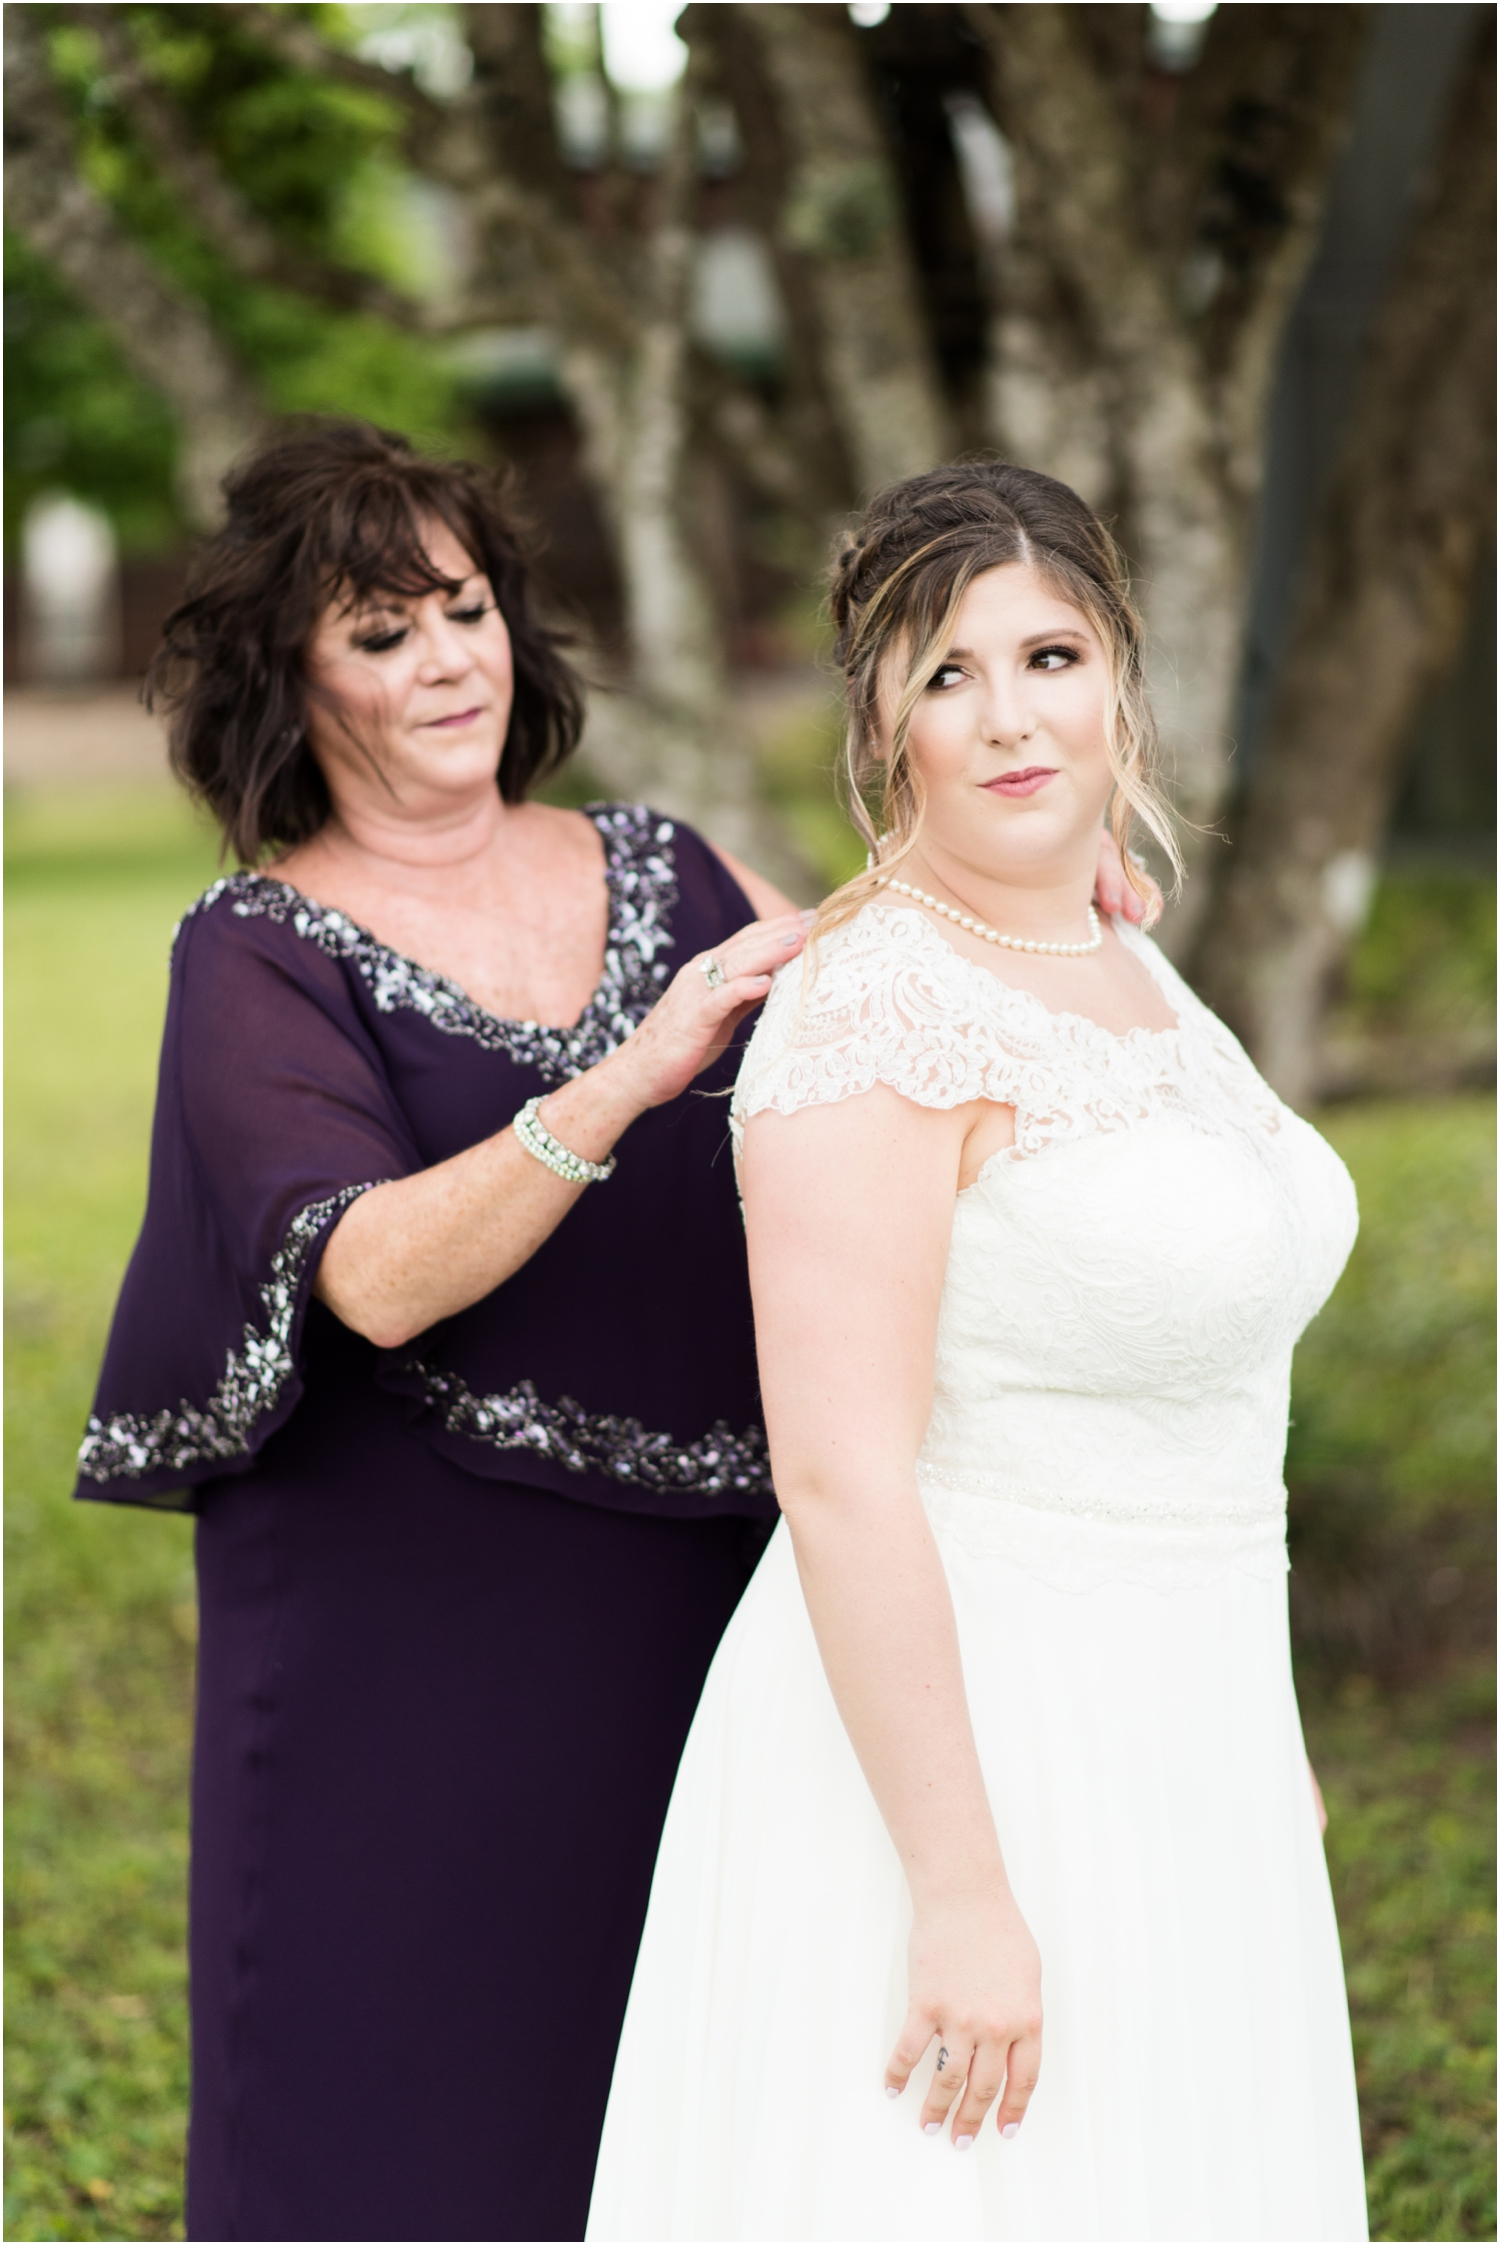 Sowell Farms Milton Florida Rustic Woodsy Barn Wedding Photographer getting ready bride gown bridesmaids